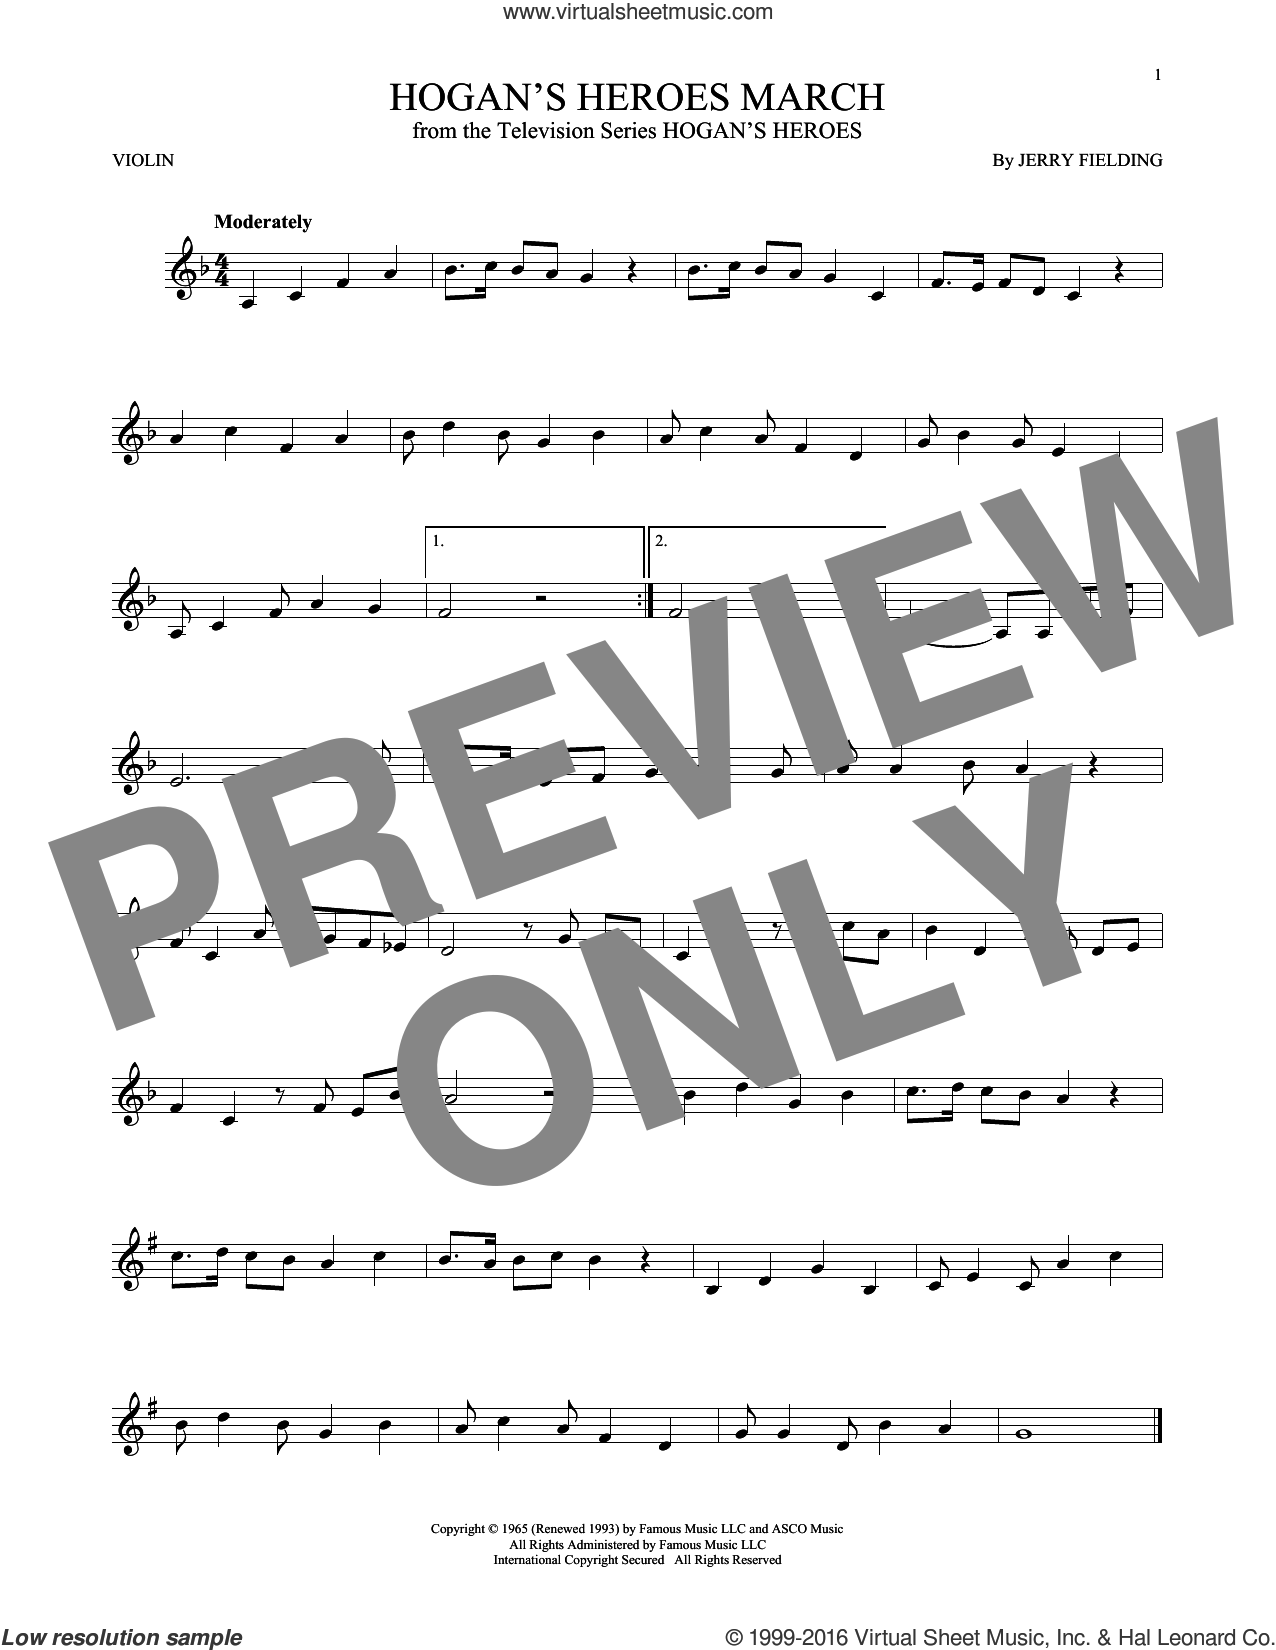 Hogan's Heroes March sheet music for violin solo by Jerry Fielding, intermediate skill level